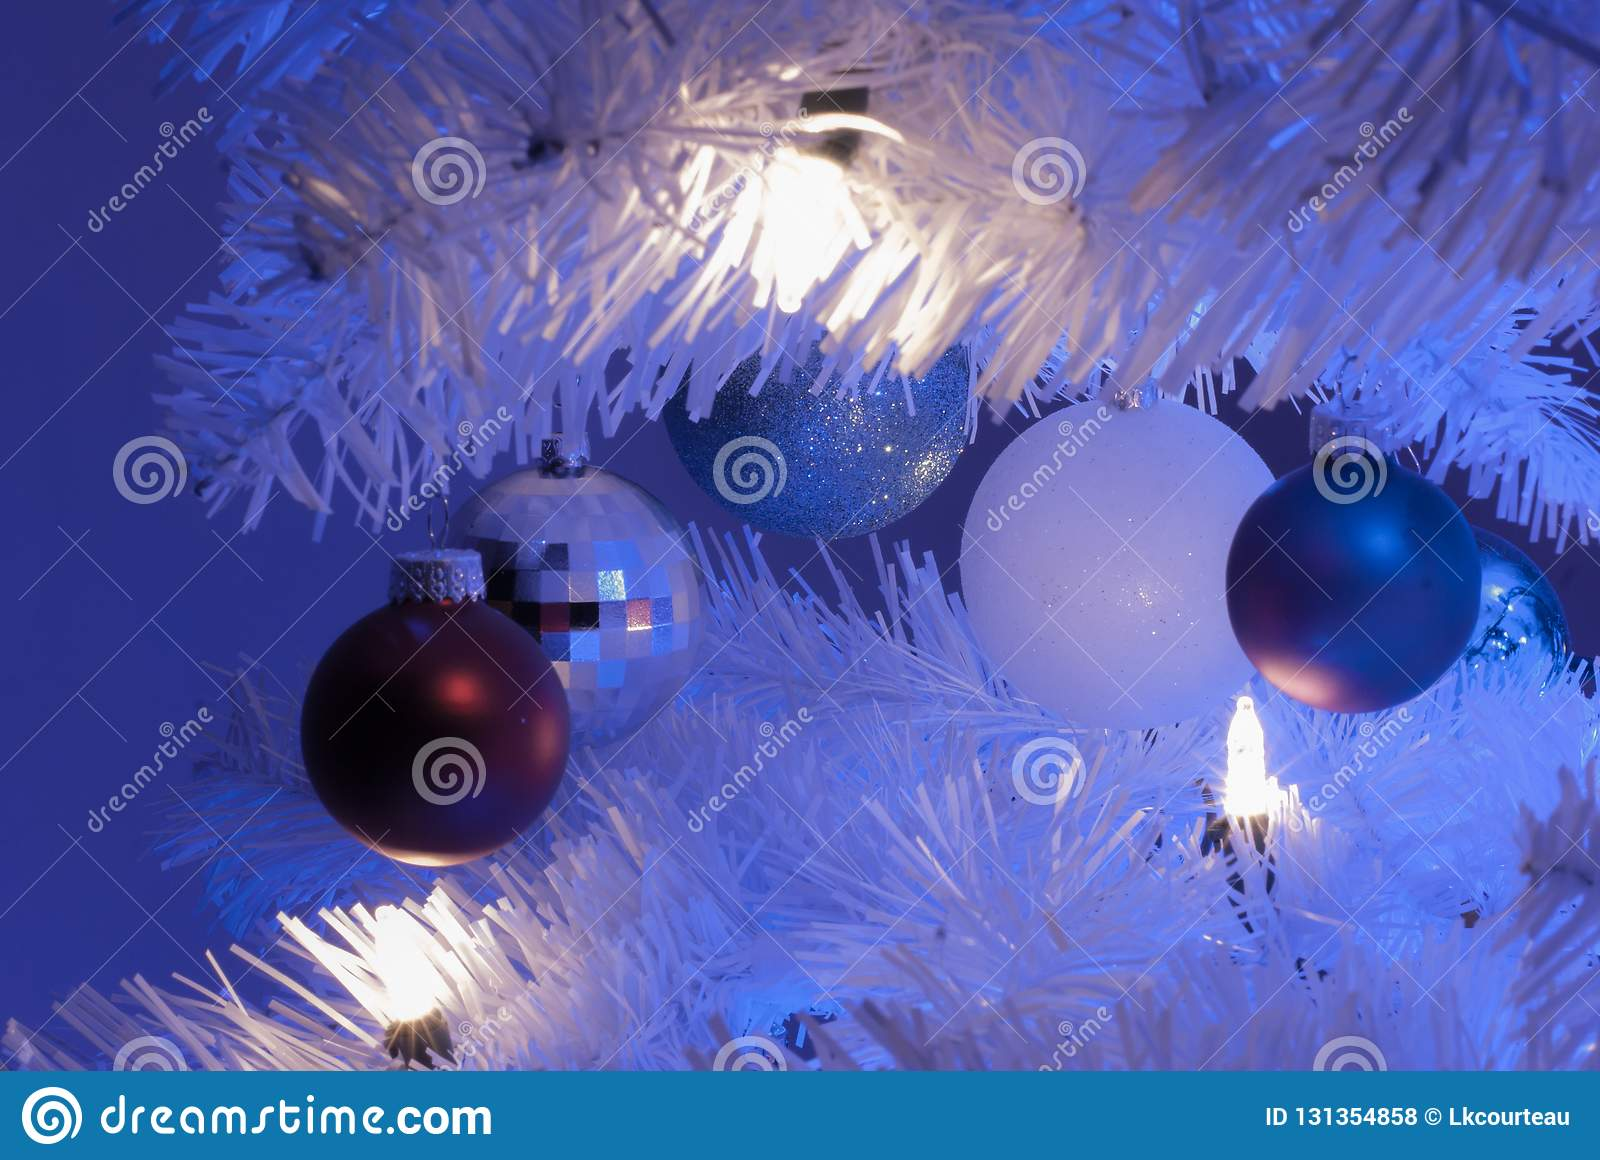 Close Up Of 5 Ornaments In White Christmas Tree With White Light In Foreground And Blue Lights In Background Stock Photo Image Of Christmas Holiday 131354858